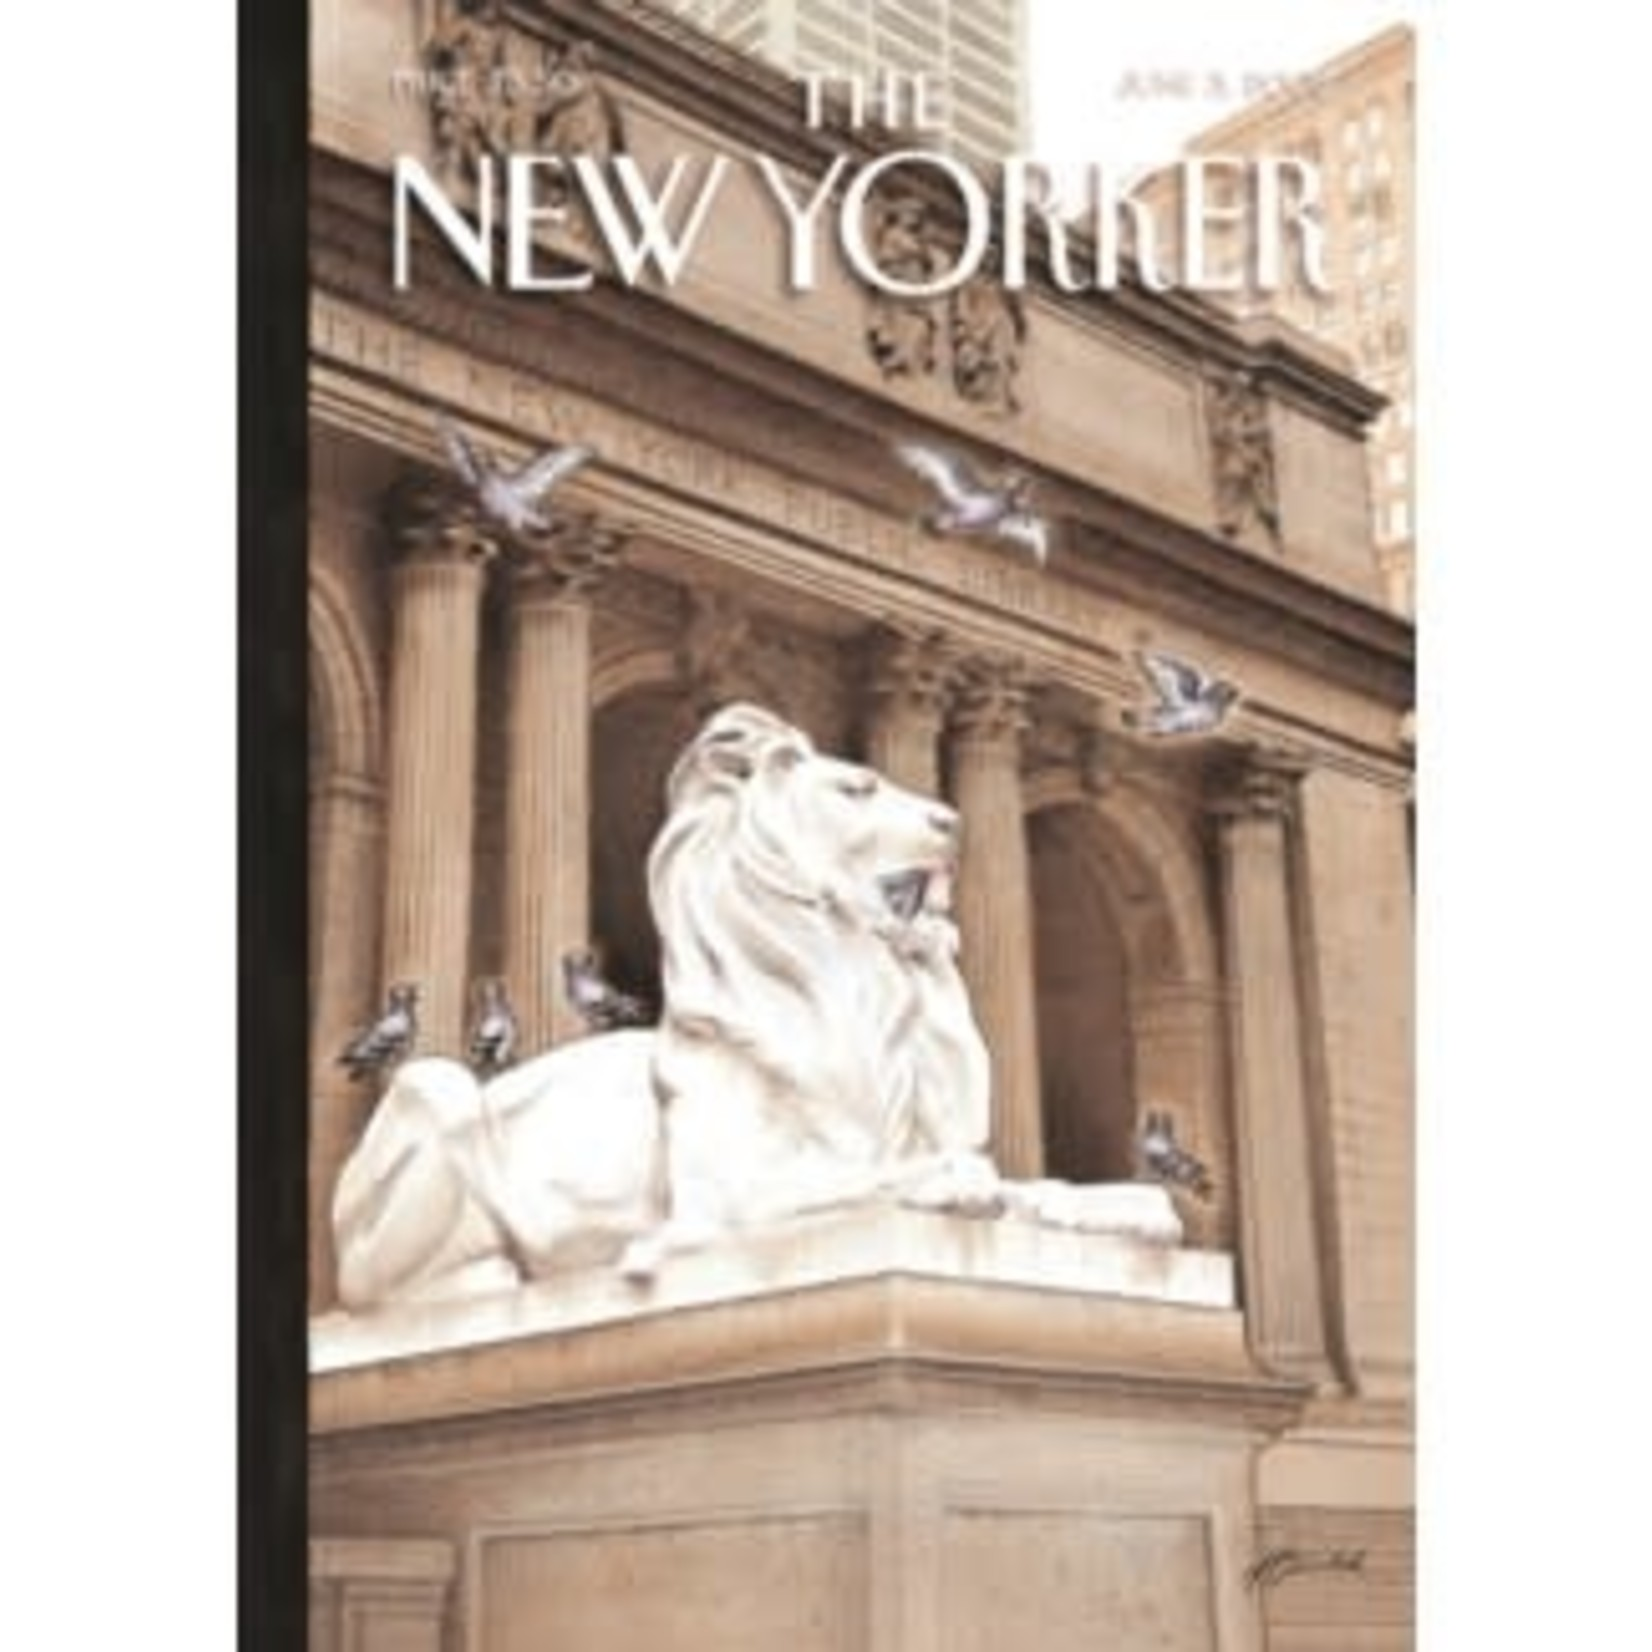 New Yorker Library Lions